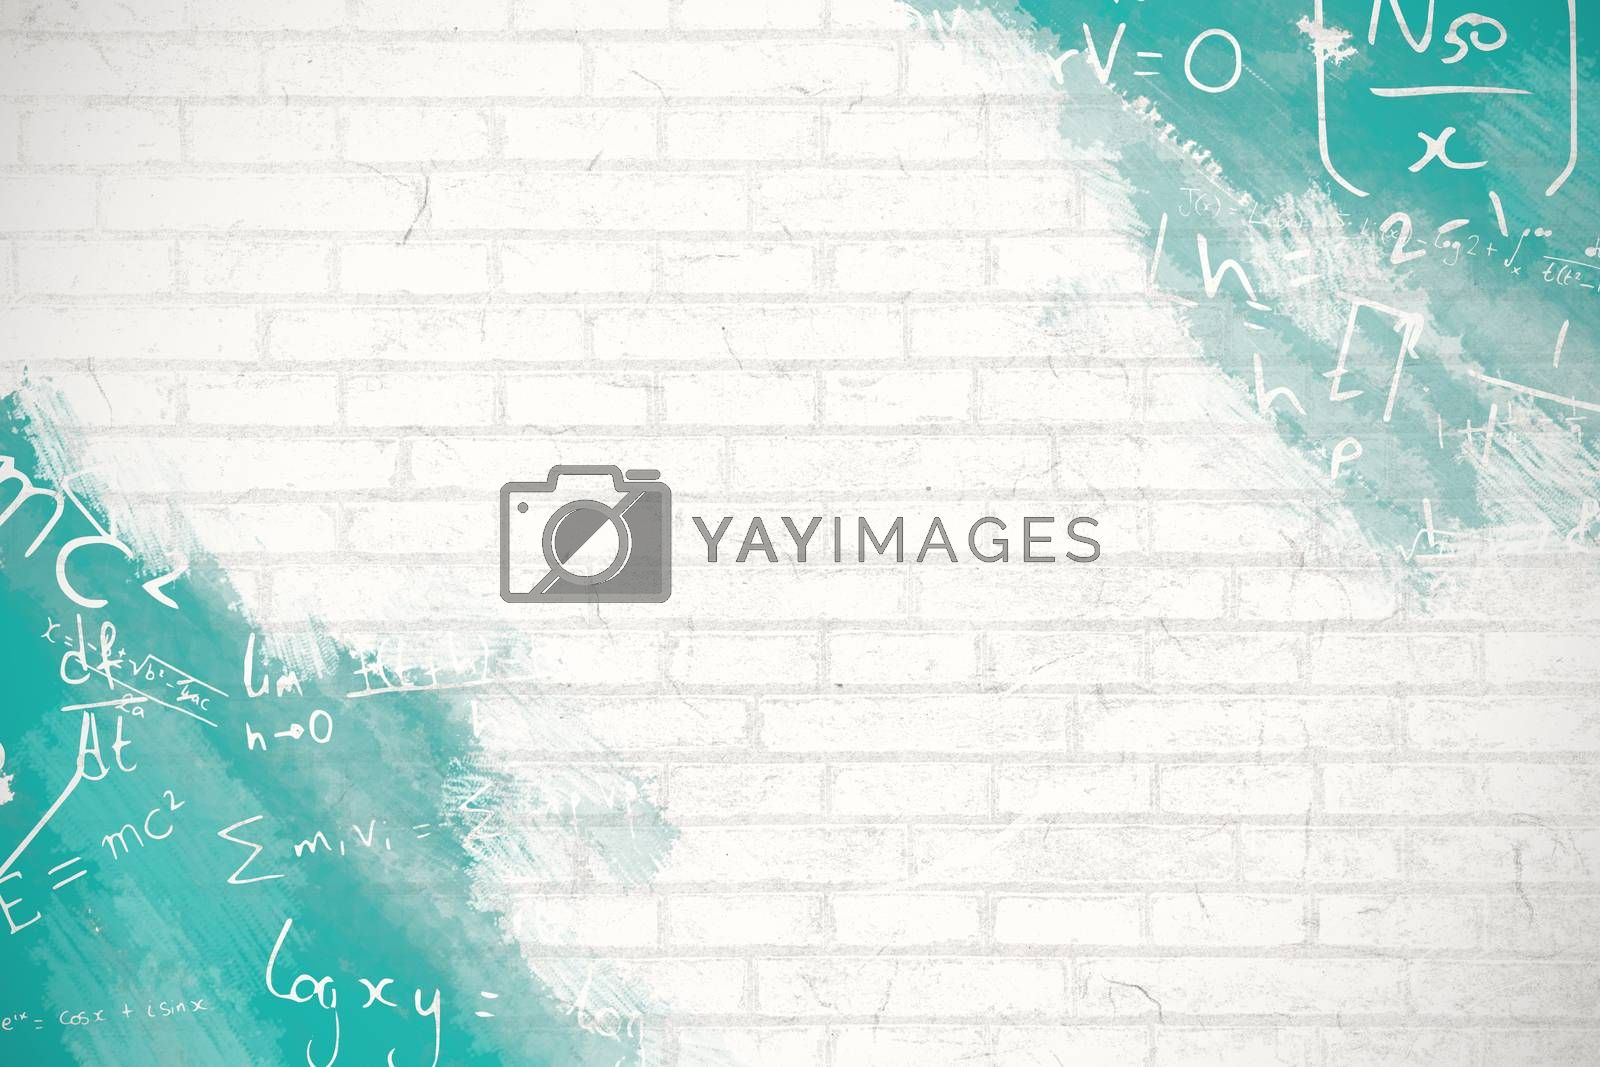 Composite image of digital image of equations by Wavebreakmedia